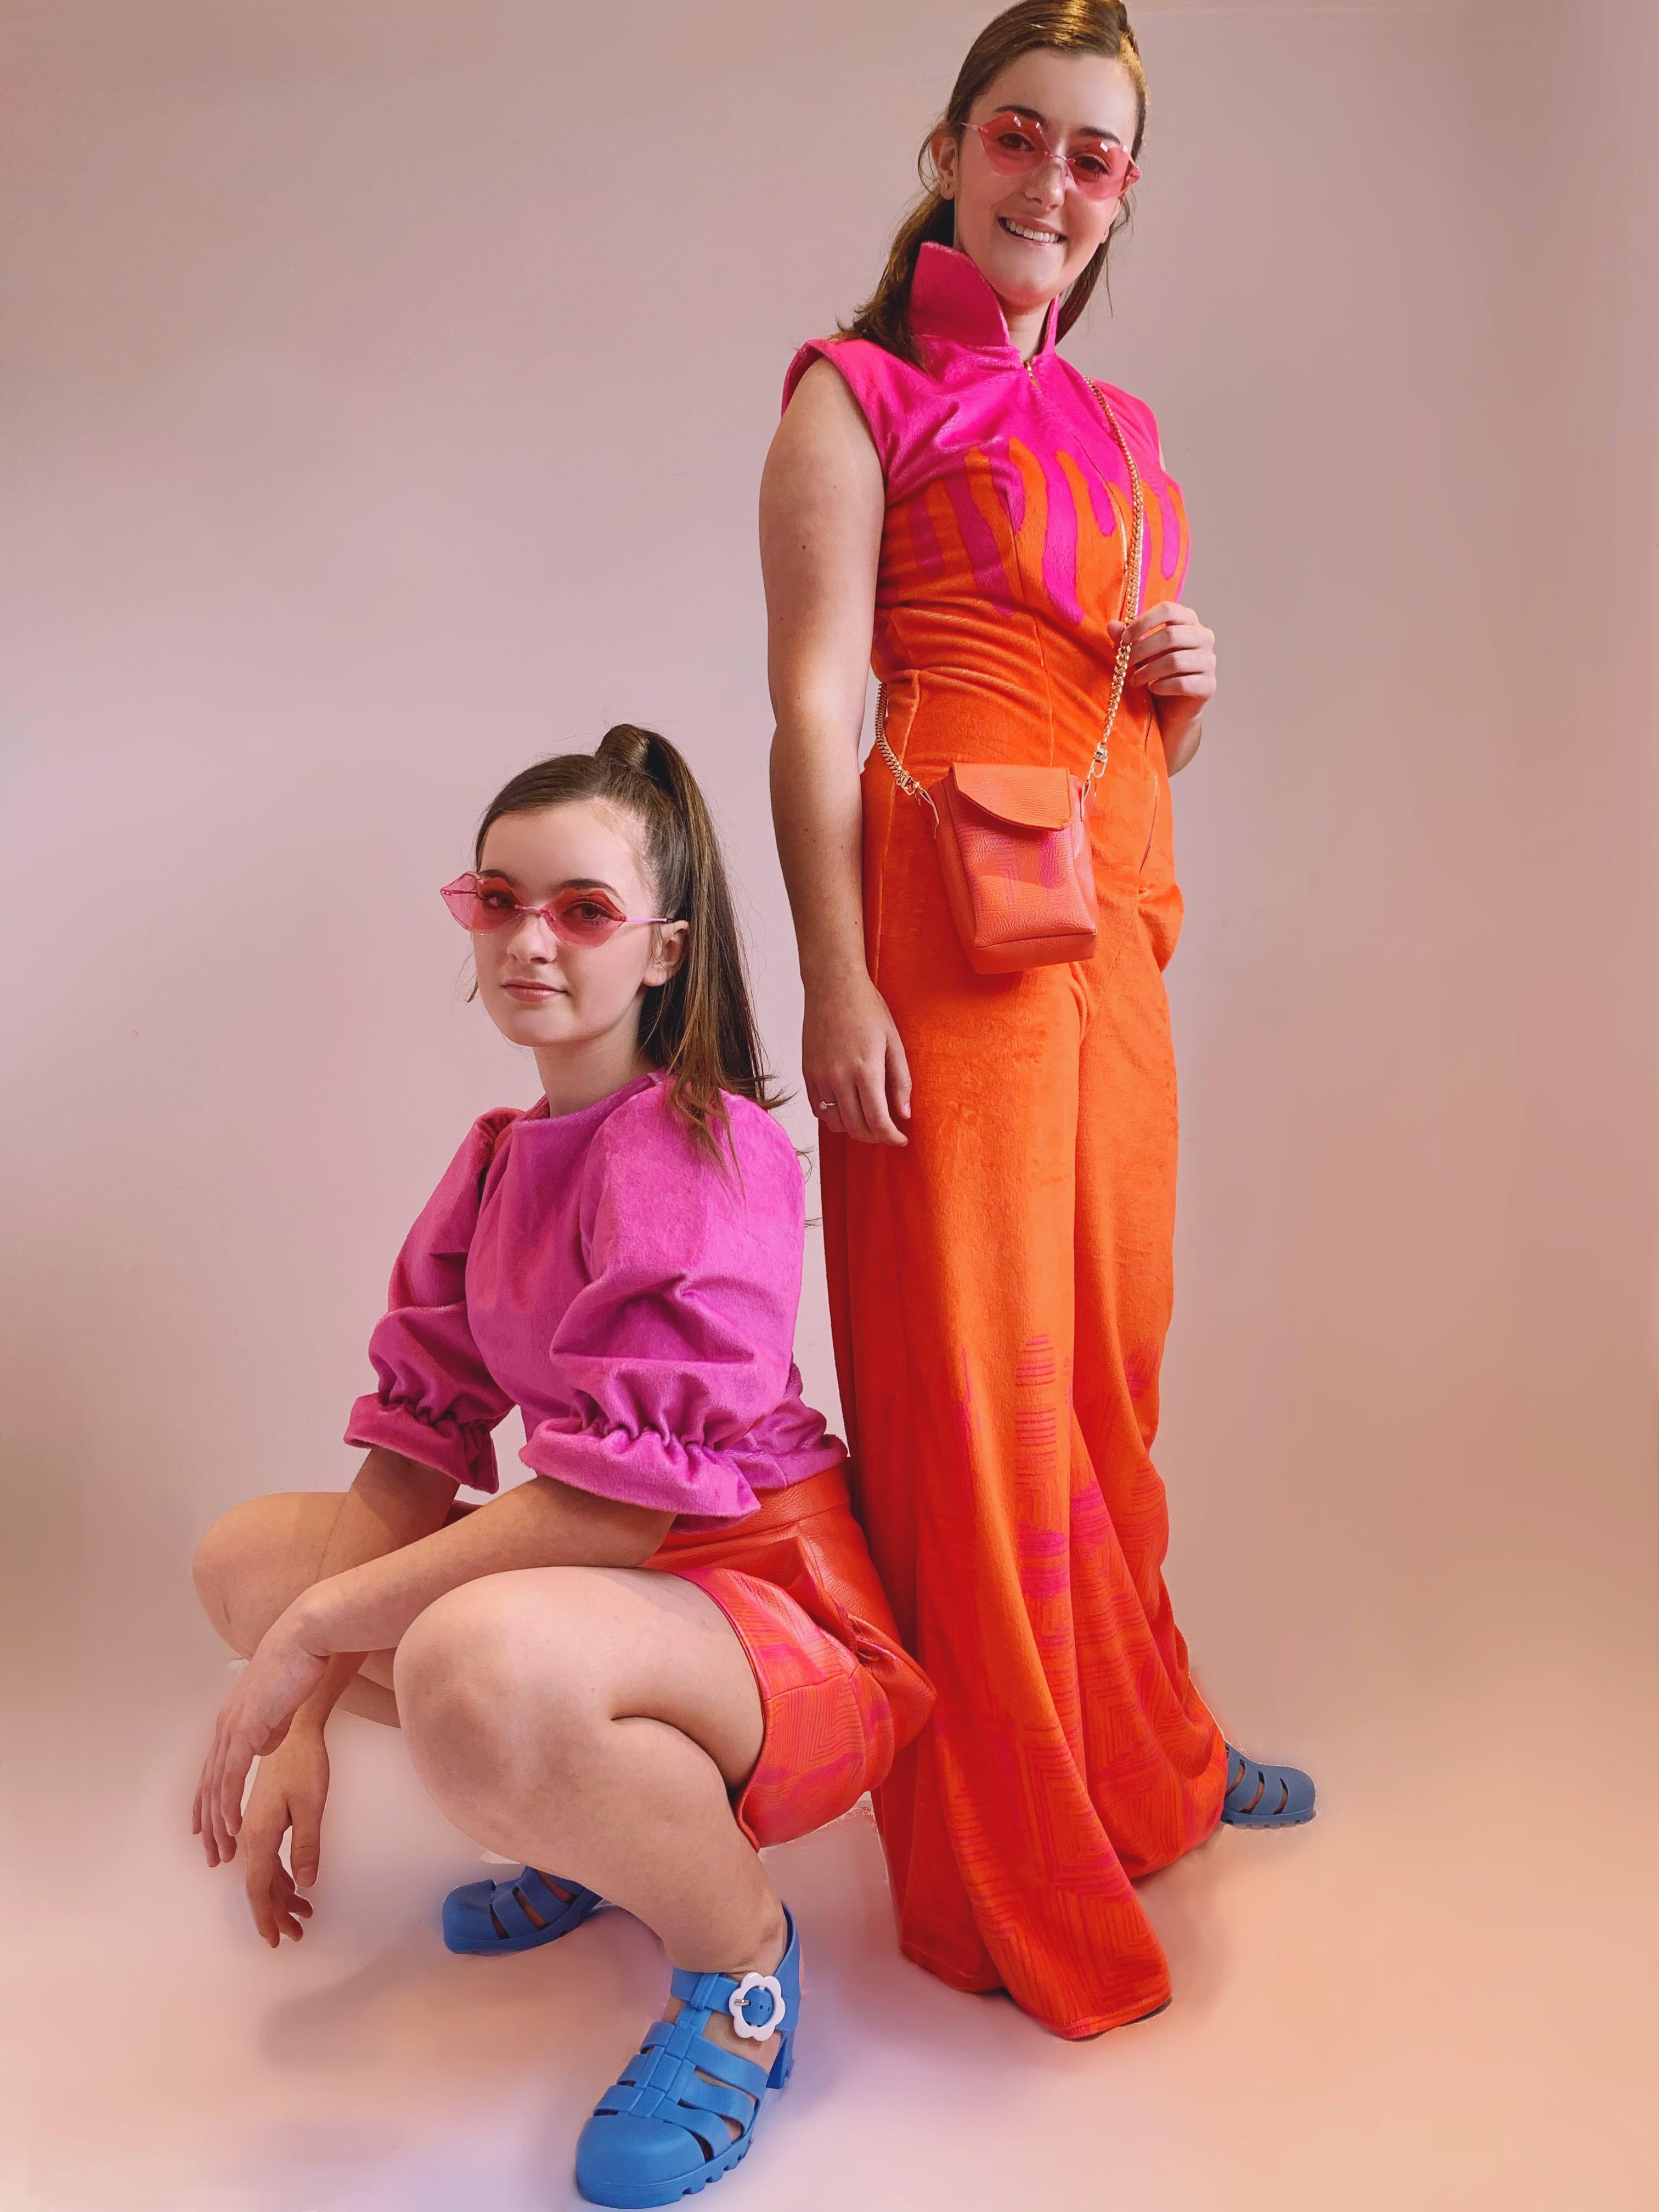 Photograph of two girls (one standing, one crouching) modelling an item in the 'Let's Get Trippy' collection.